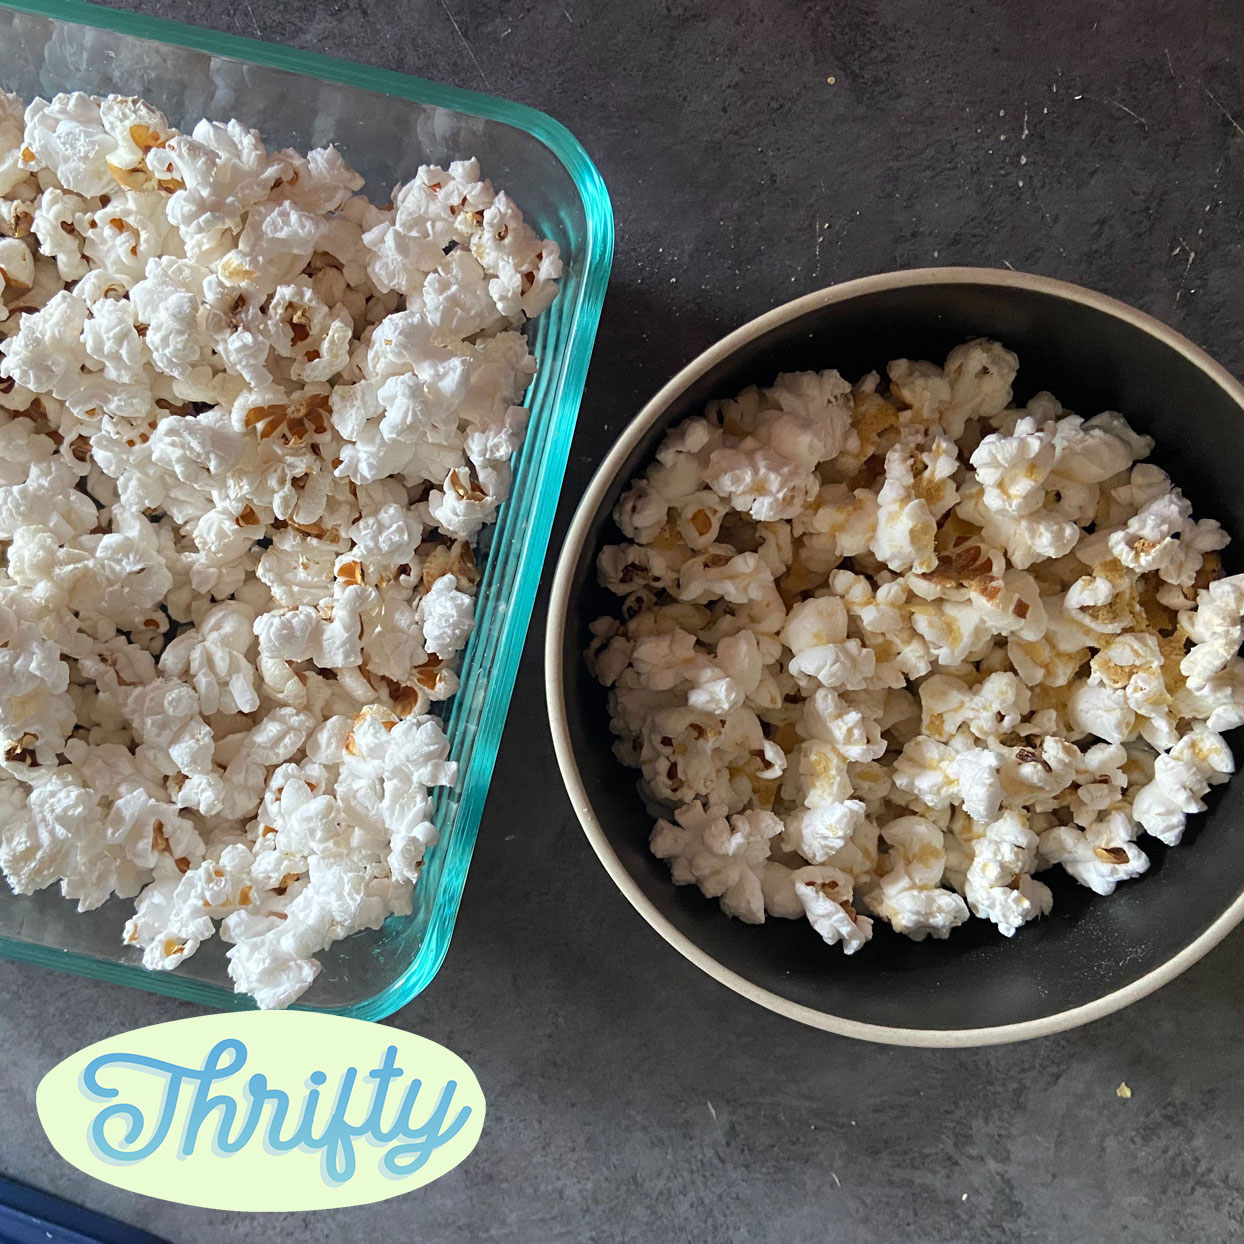 This Popcorn Hack Will Save You Money While Making a Delicious Zero-Waste Snack